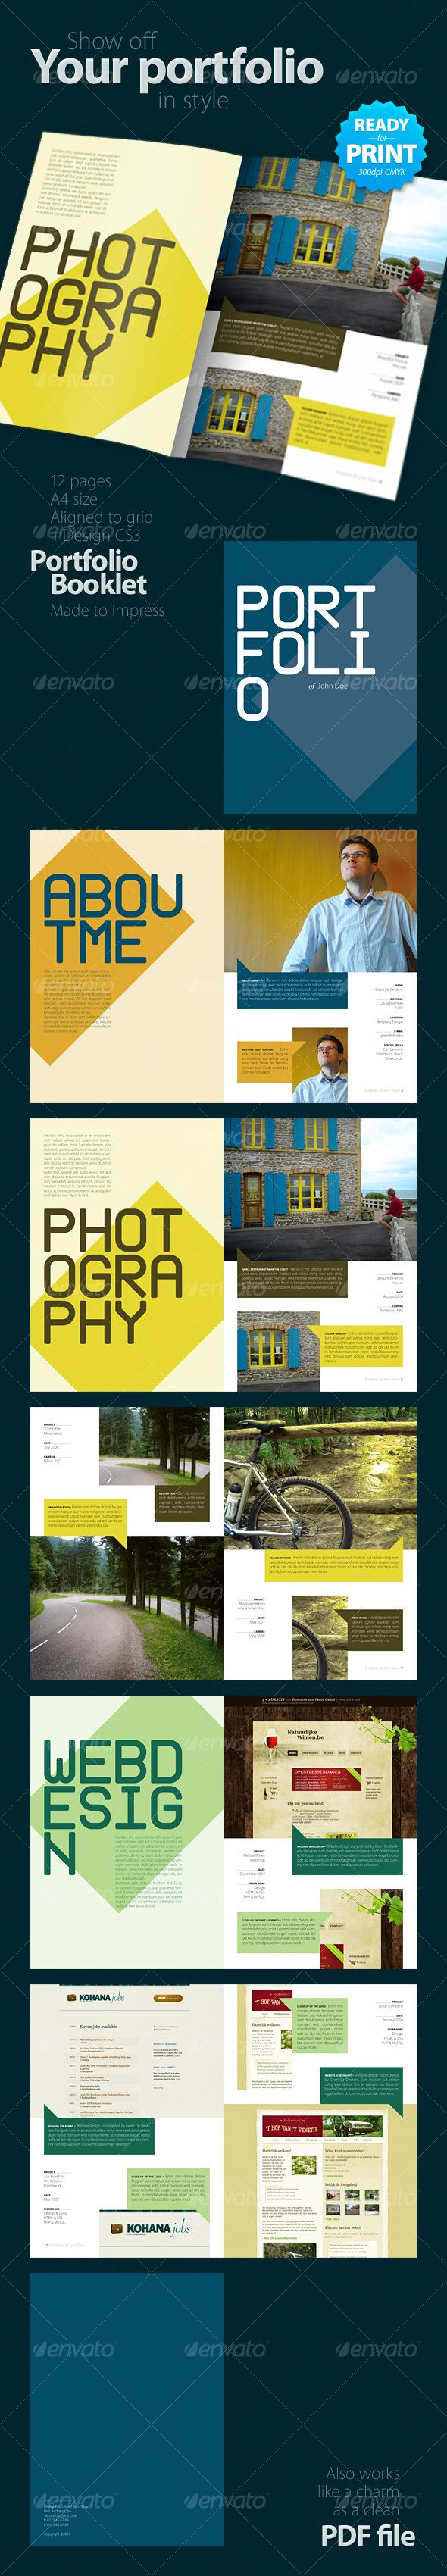 Portfolio Booklet (12 pages) - GraphicRiver Item for Sale